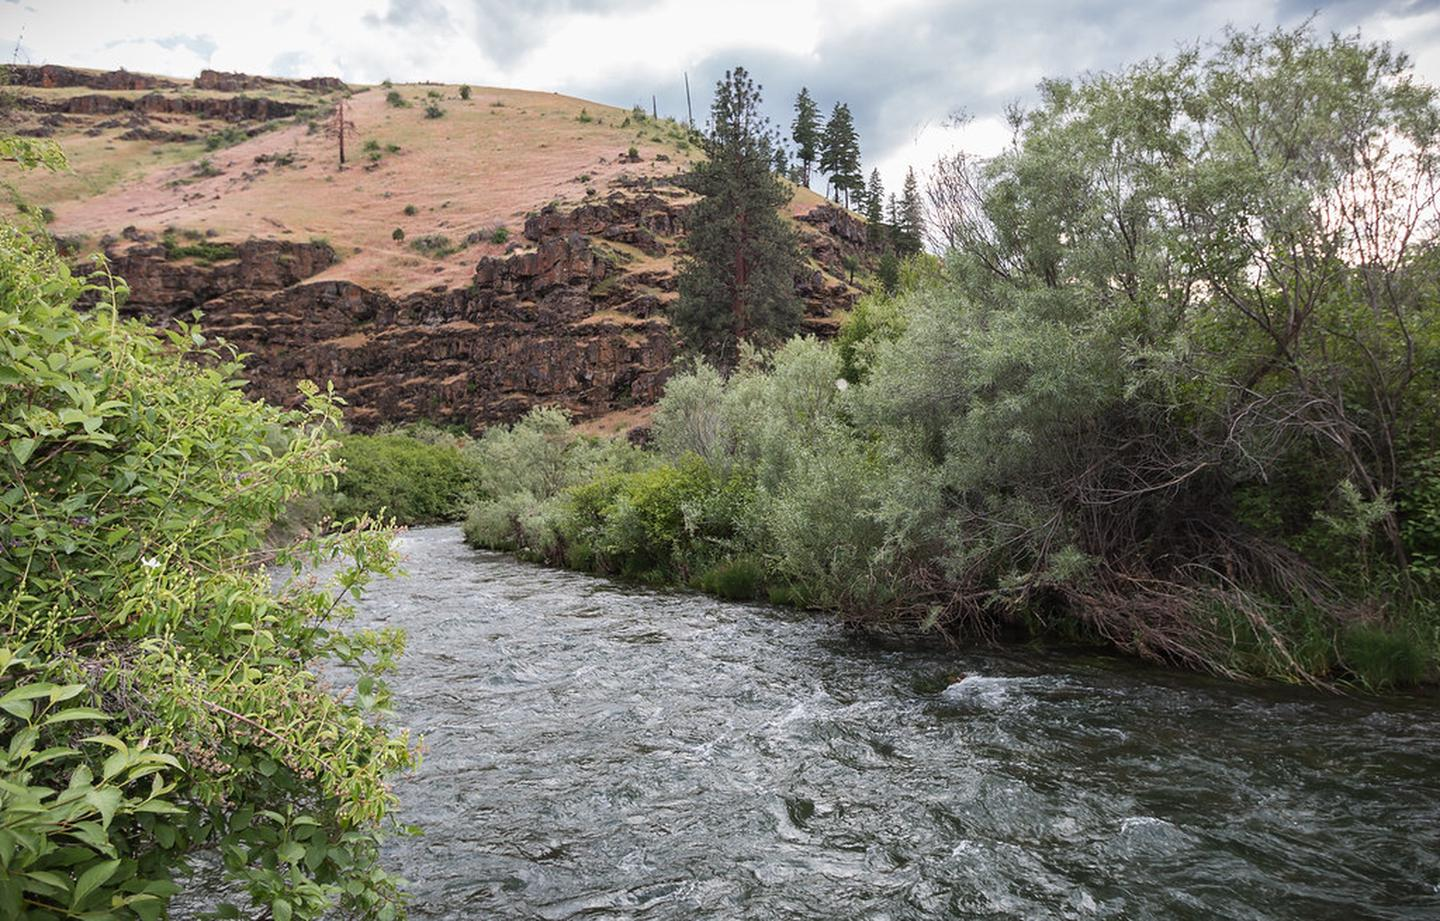 View of the South Fork John Day River with basalt cliff in distance.View of the South Fork John Day River with basalt cliff in distance.